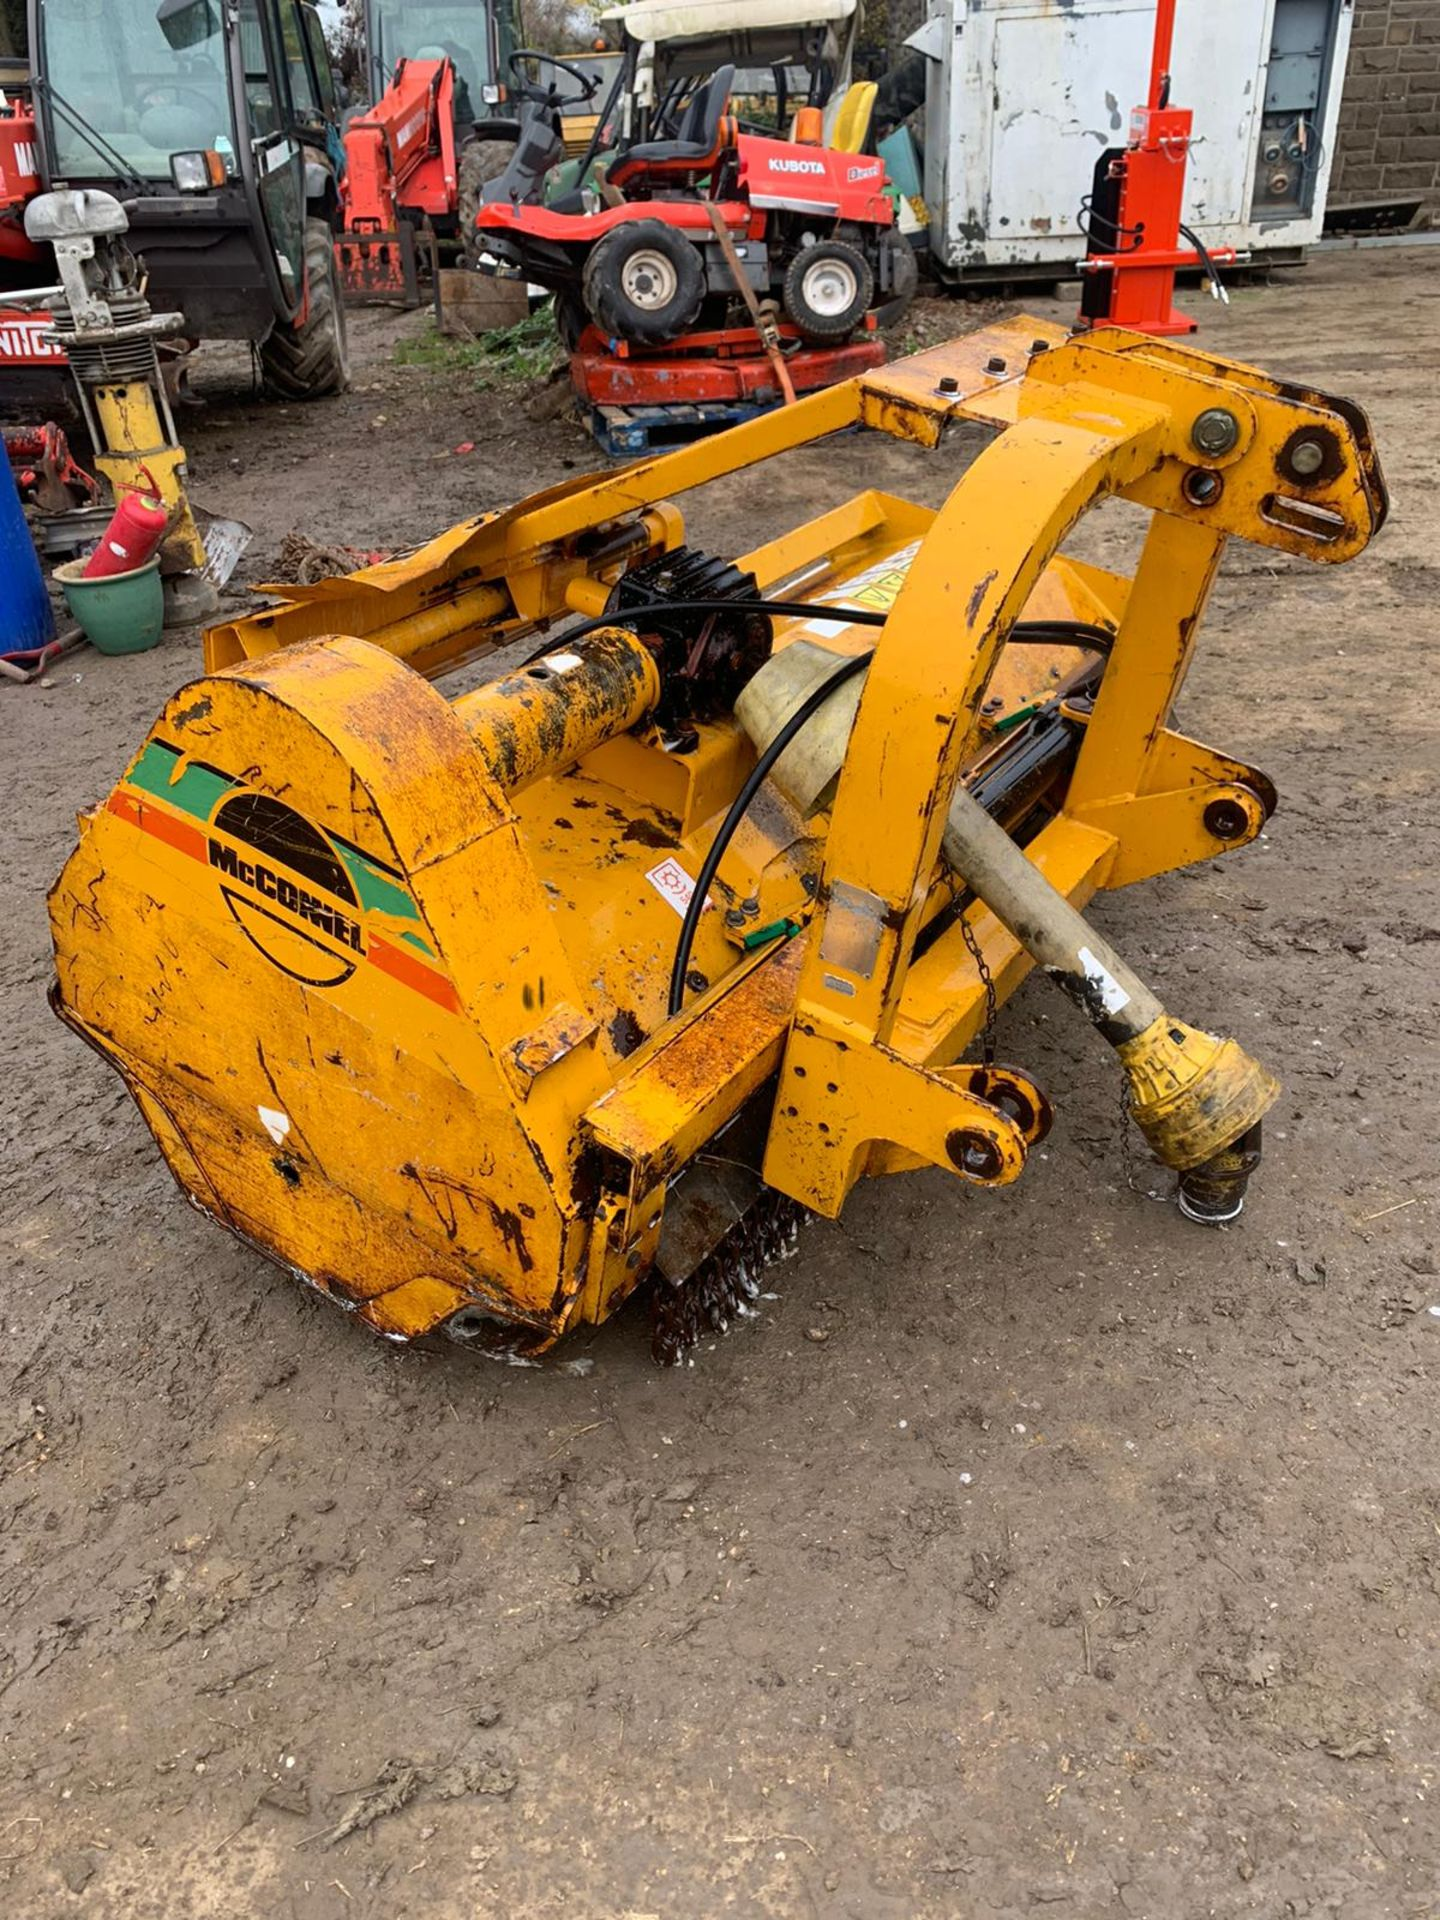 McCONNELL MDL180 FLAIL MOWER, SIDE SHIFT, C/W PTO *PLUS VAT* - Image 4 of 5